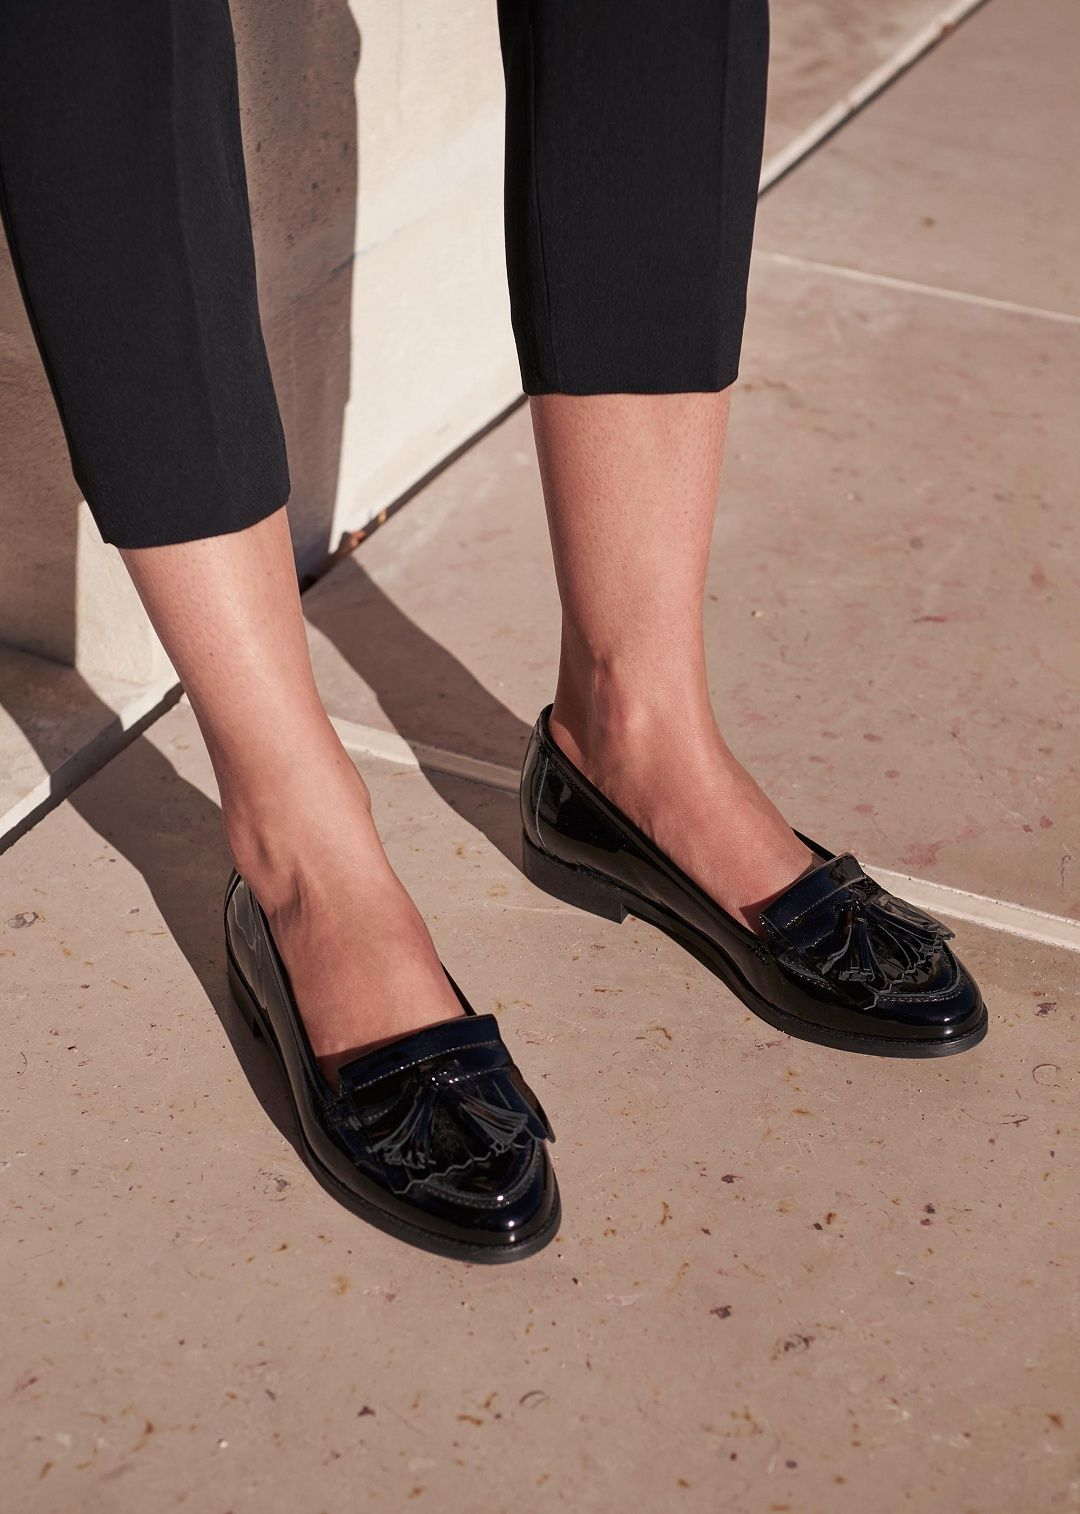 ad226da7342 Sézane - Lisa loafers   Fashion in 2019   Shoes, Loafer shoes ...